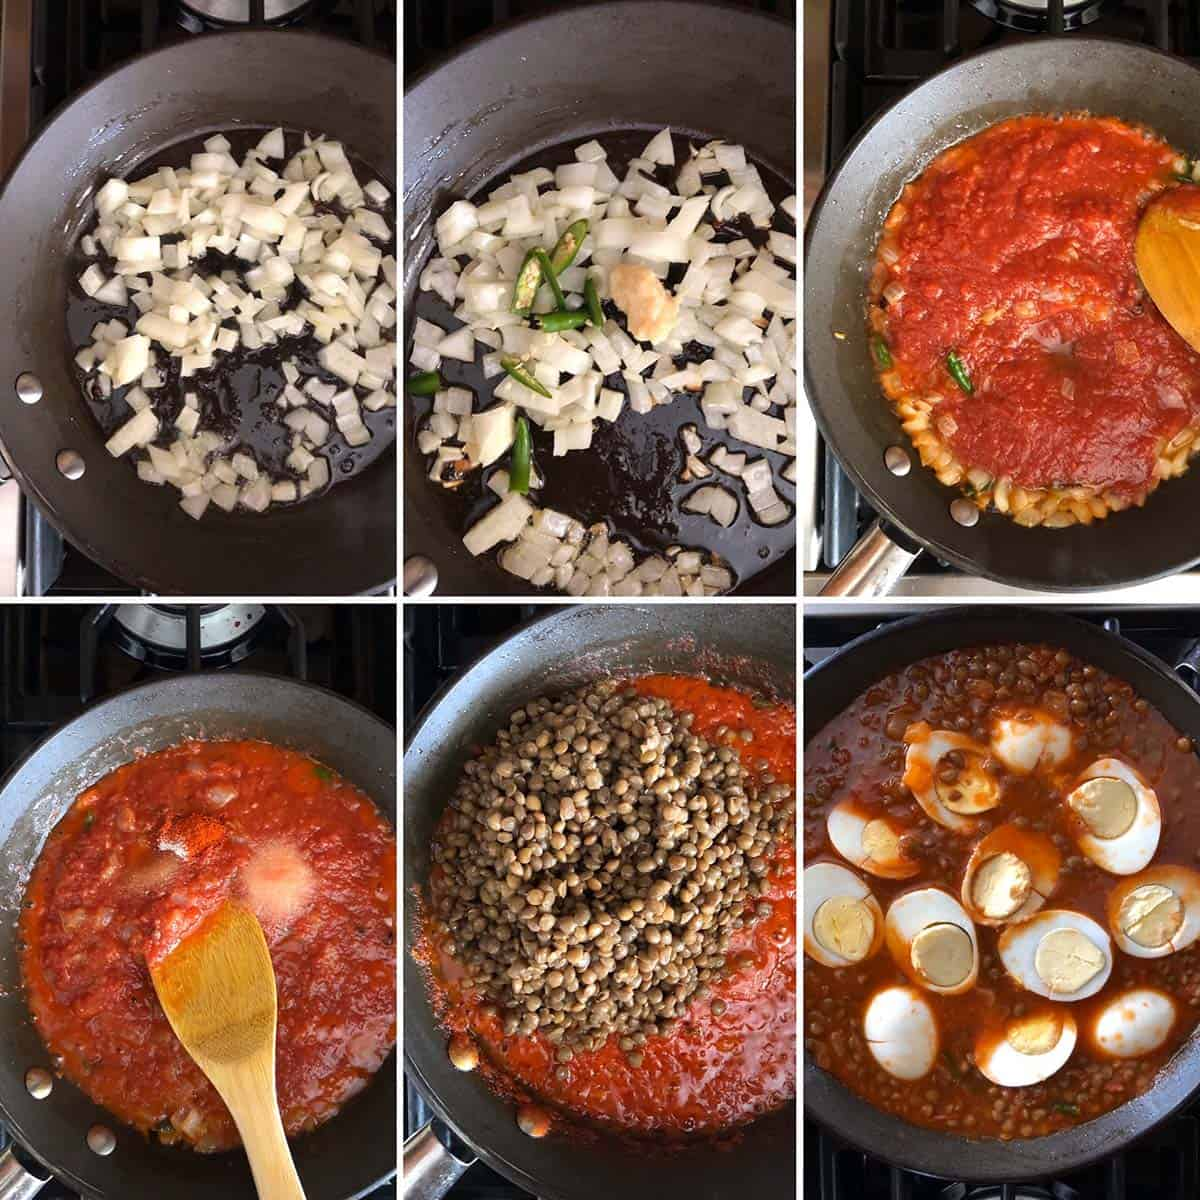 Step by step photos of cooking onions, tomato puree, lentils and eggs